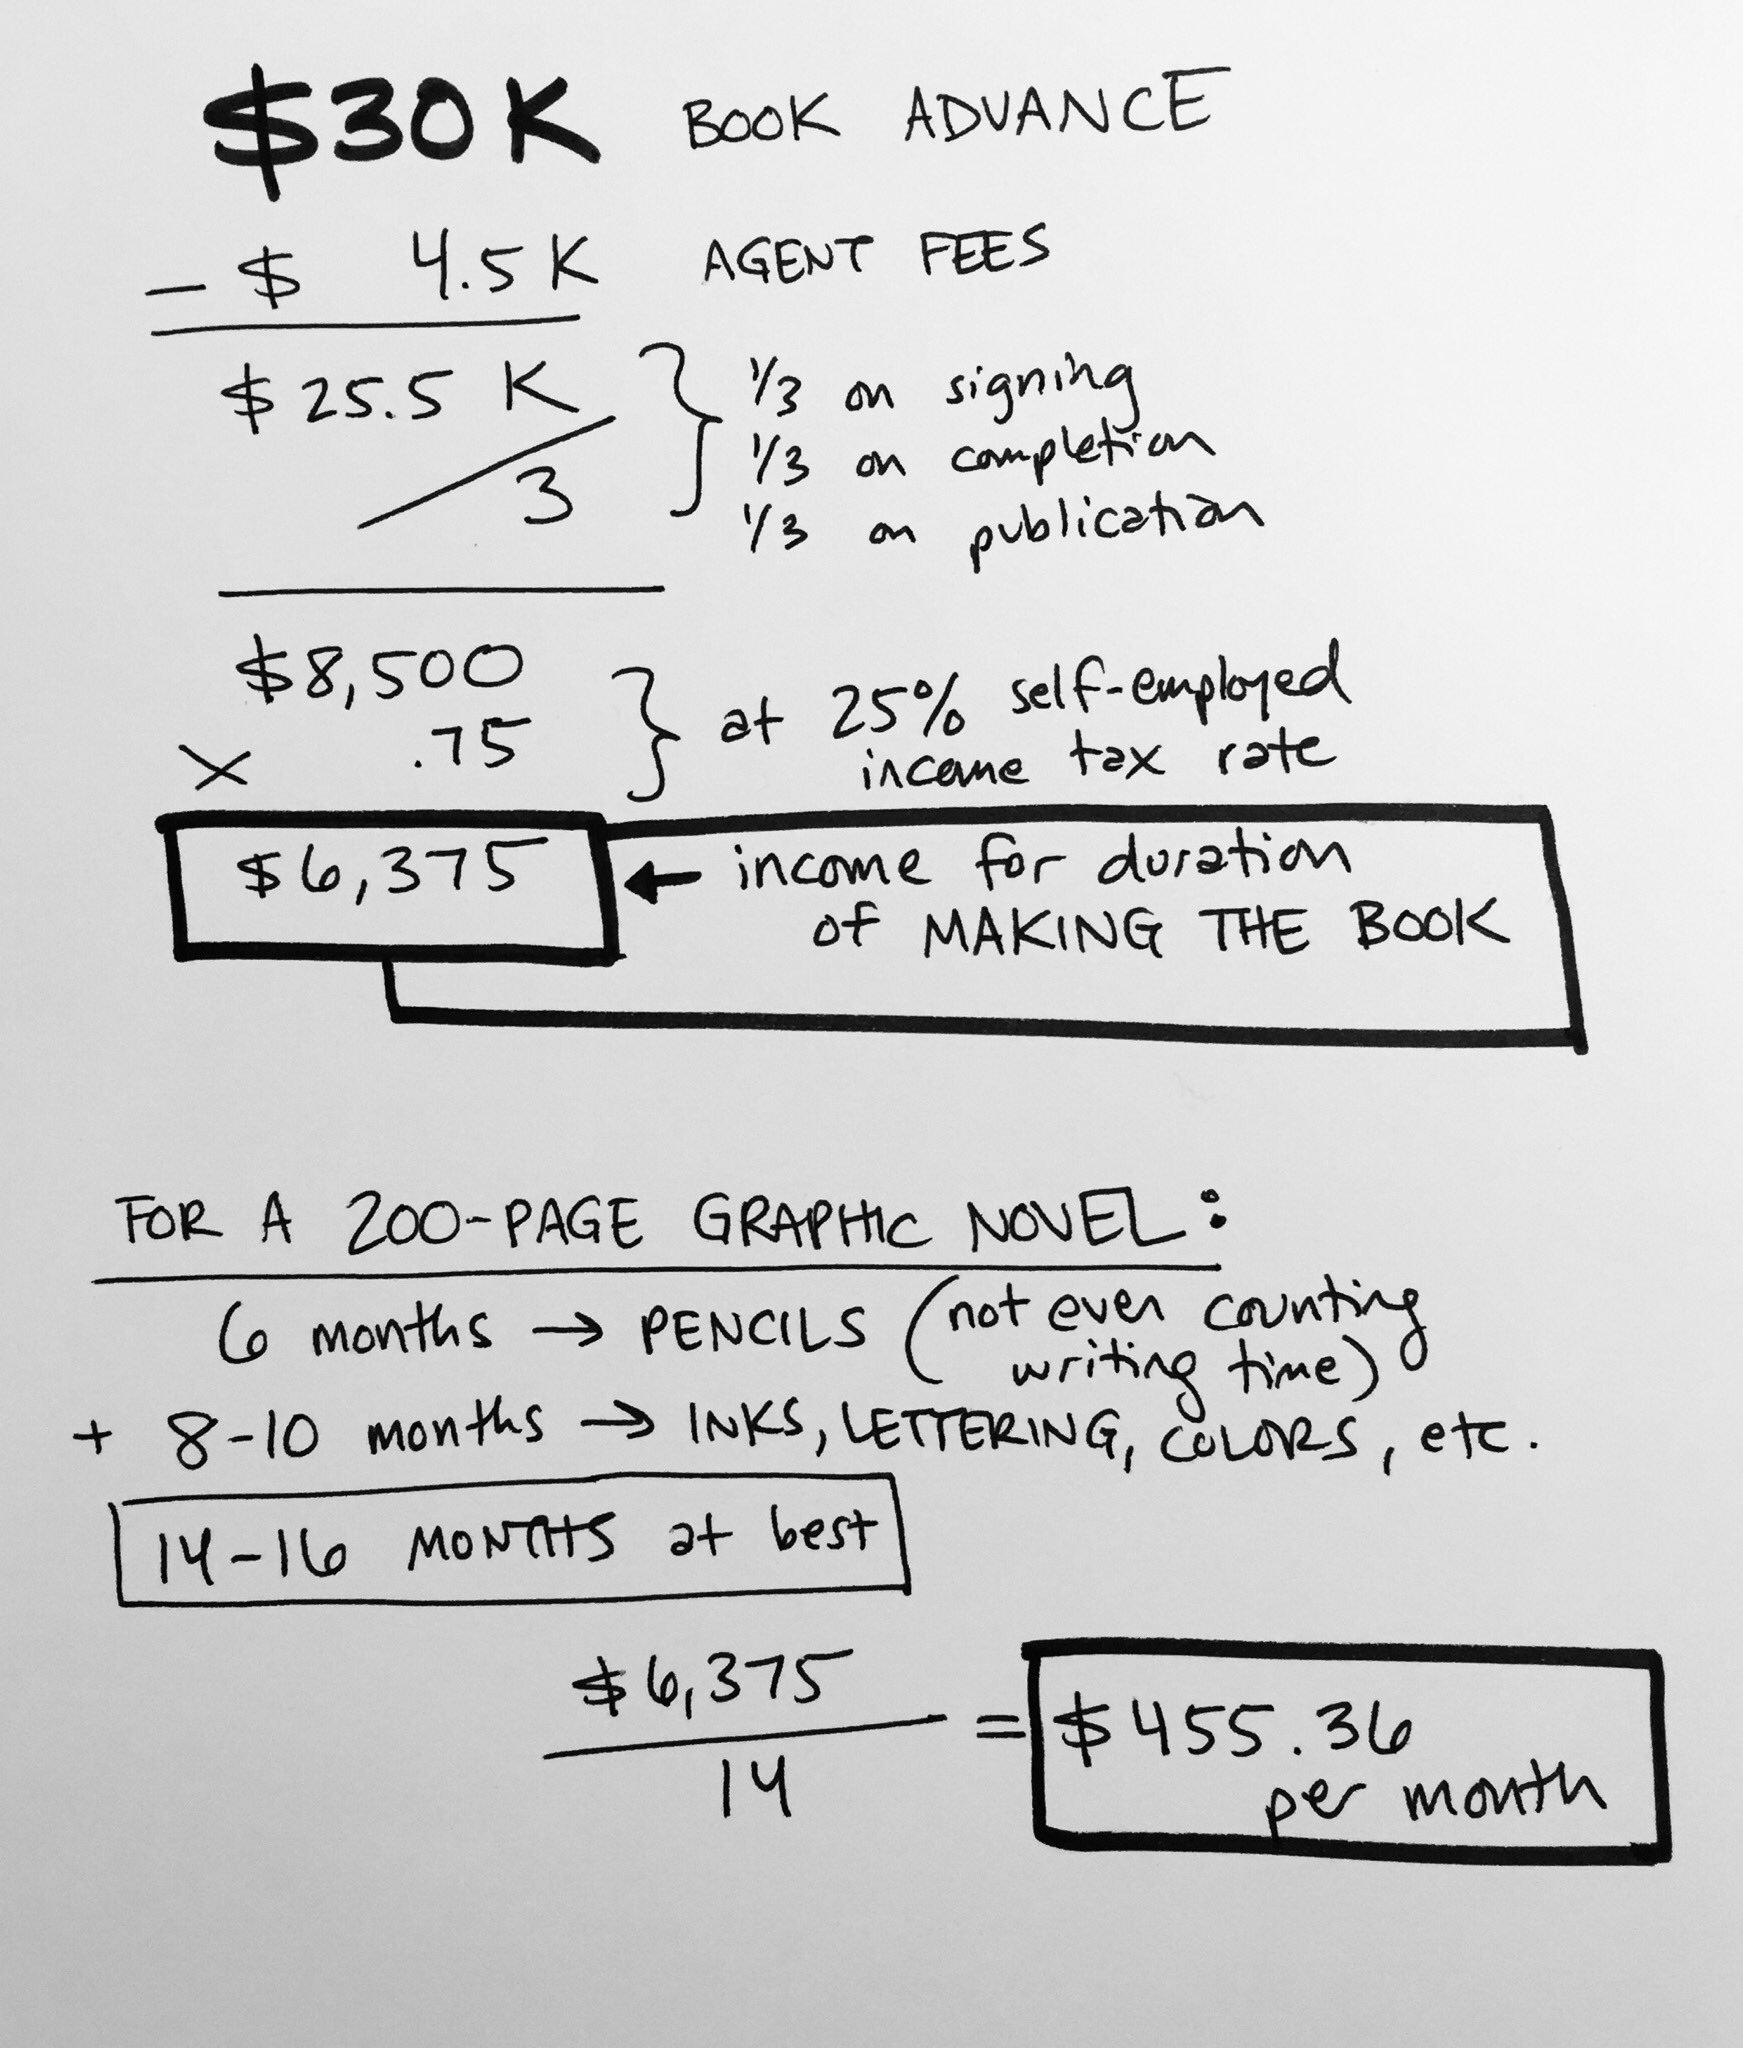 In reference to the full-time author income of $20.3k, here's a hypothetical breakdown of a cartoonist's income drawing a graphic novel. It's no joke. This is why we draw at a breakneck pace, take speaking fees & do multiple full-time projects at once. We have no other option. https://t.co/jWxt6HlWP1